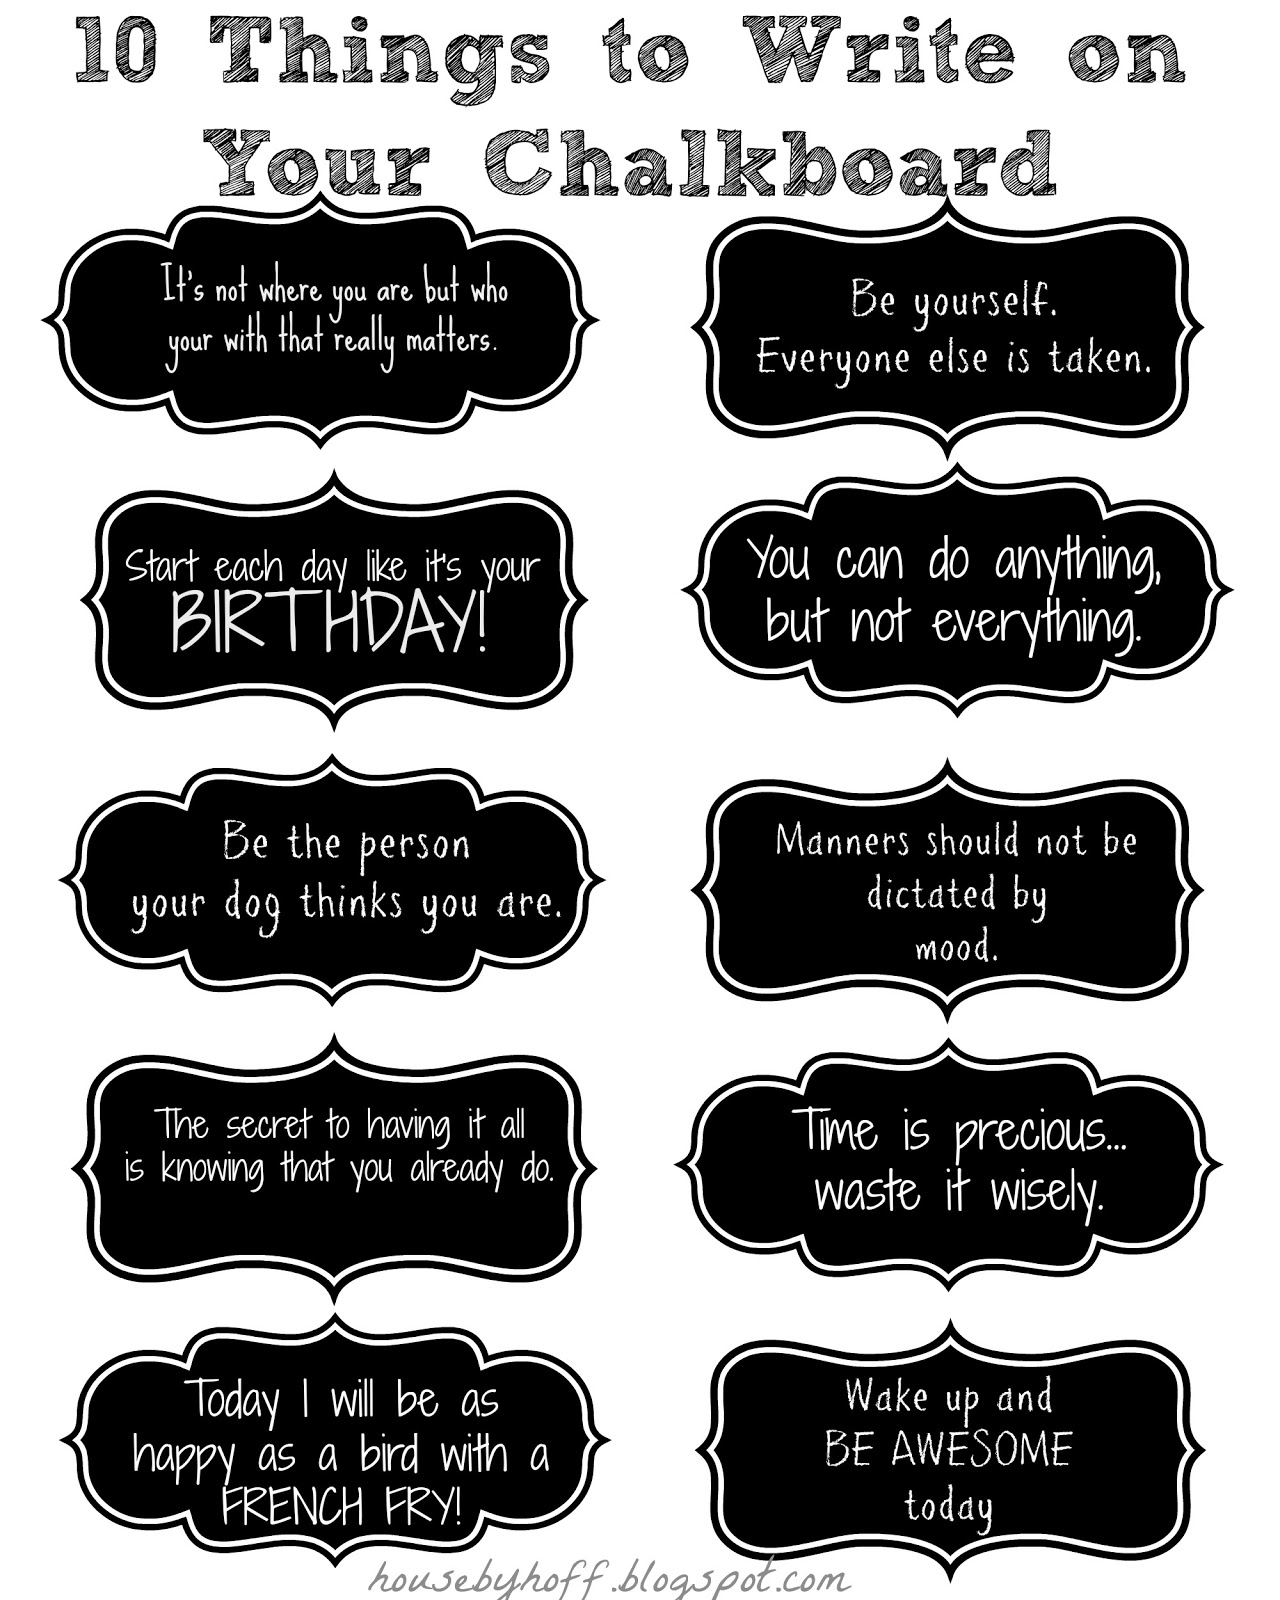 10 things to write on your chalkboard house by hoff - Things to put on a wall ...